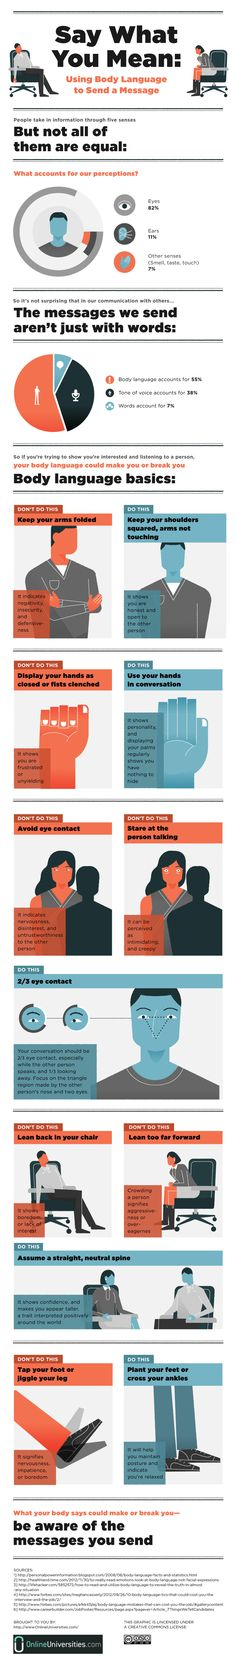 7 Surprising Things Your Body Language Says About You -PositiveMed | Positive Vibrations in Health